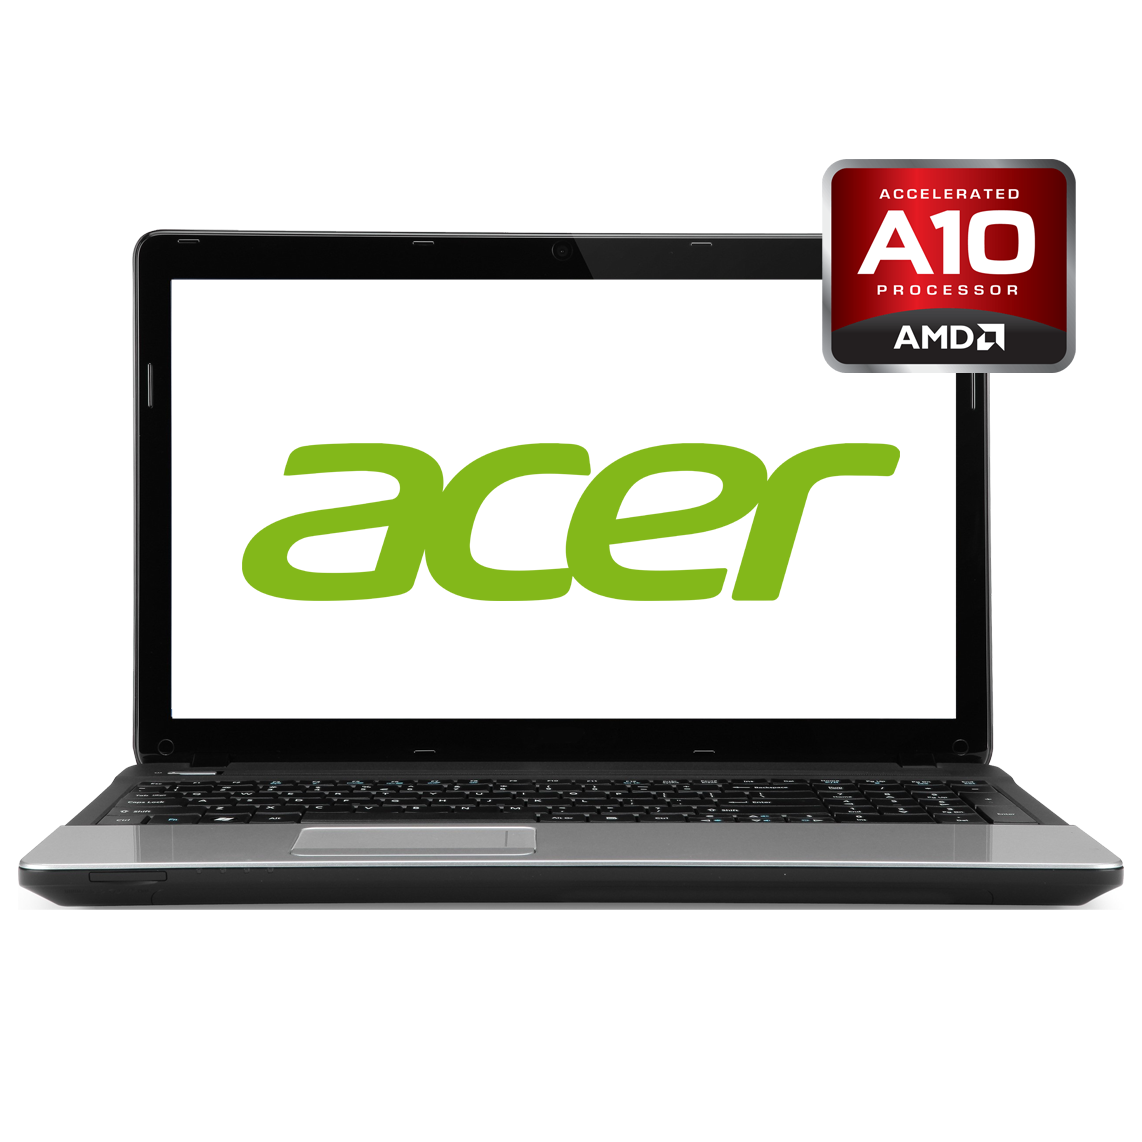 Acer - 17.3 inch AMD A10